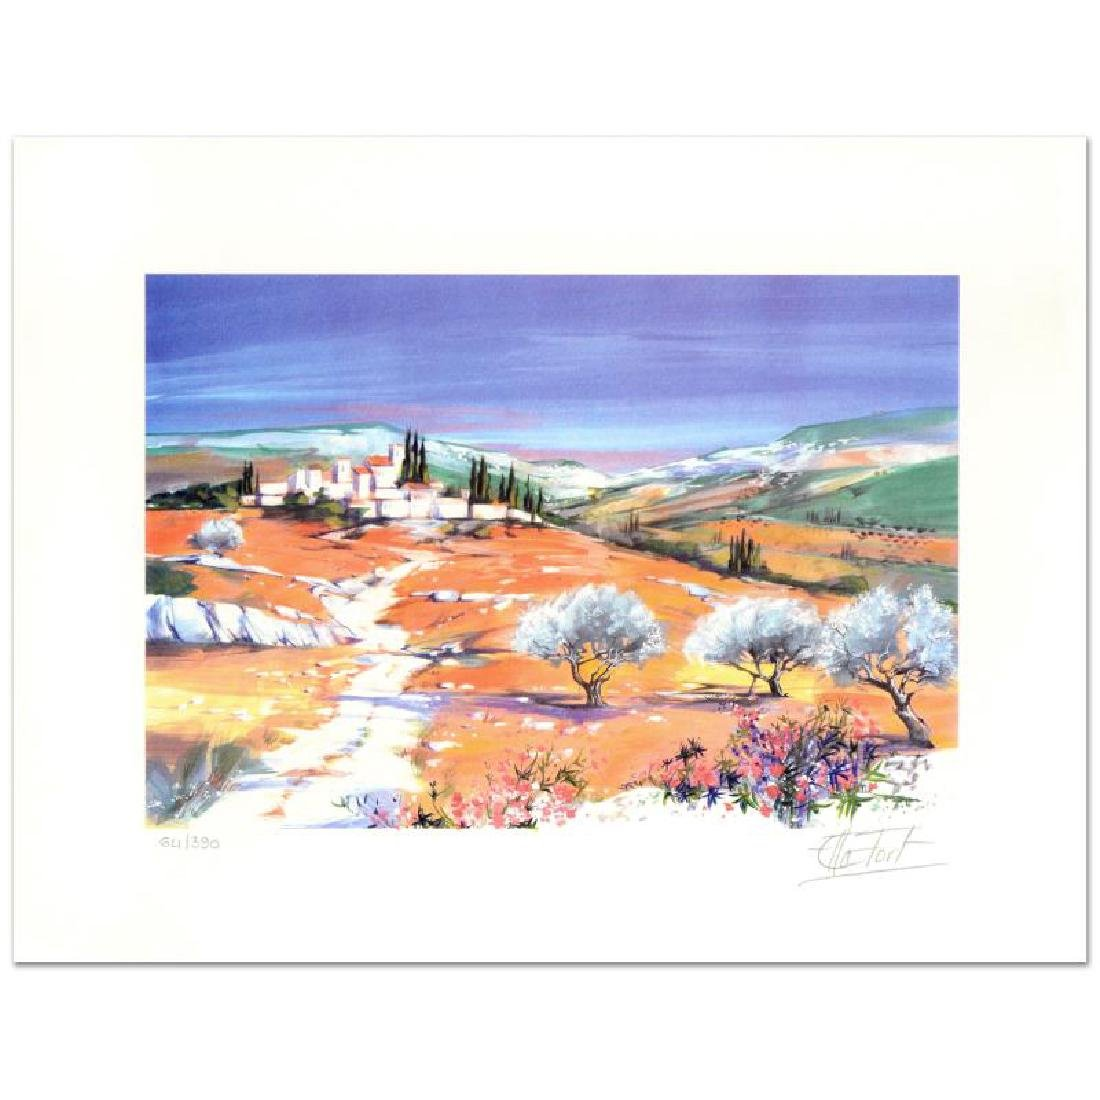 """Ella Fort - """"Village in the Clearing"""" Limited Edition"""